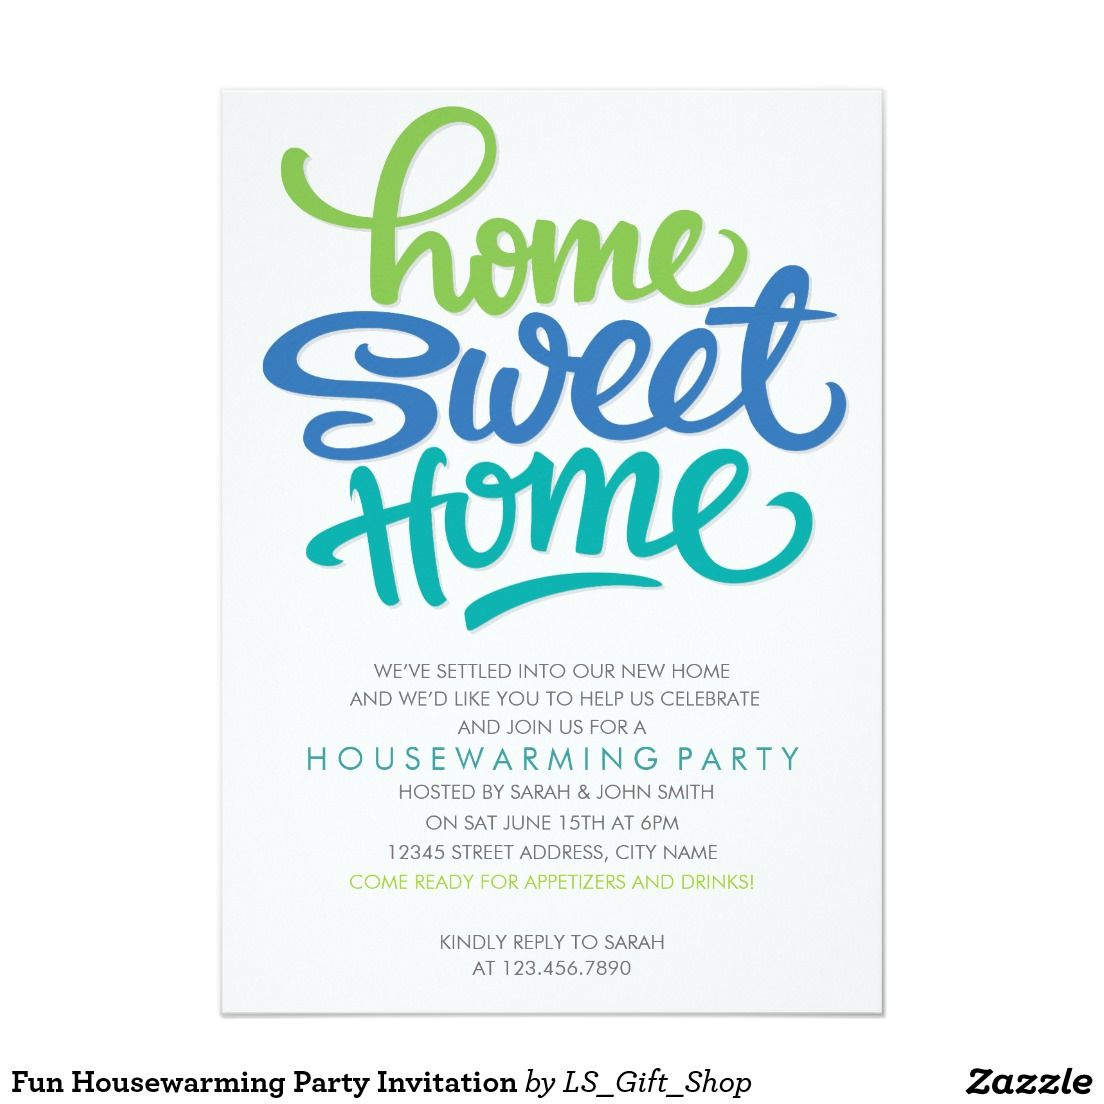 Fun housewarming party invitation invitation cards pinterest fun housewarming party invitation x invitation card stopboris